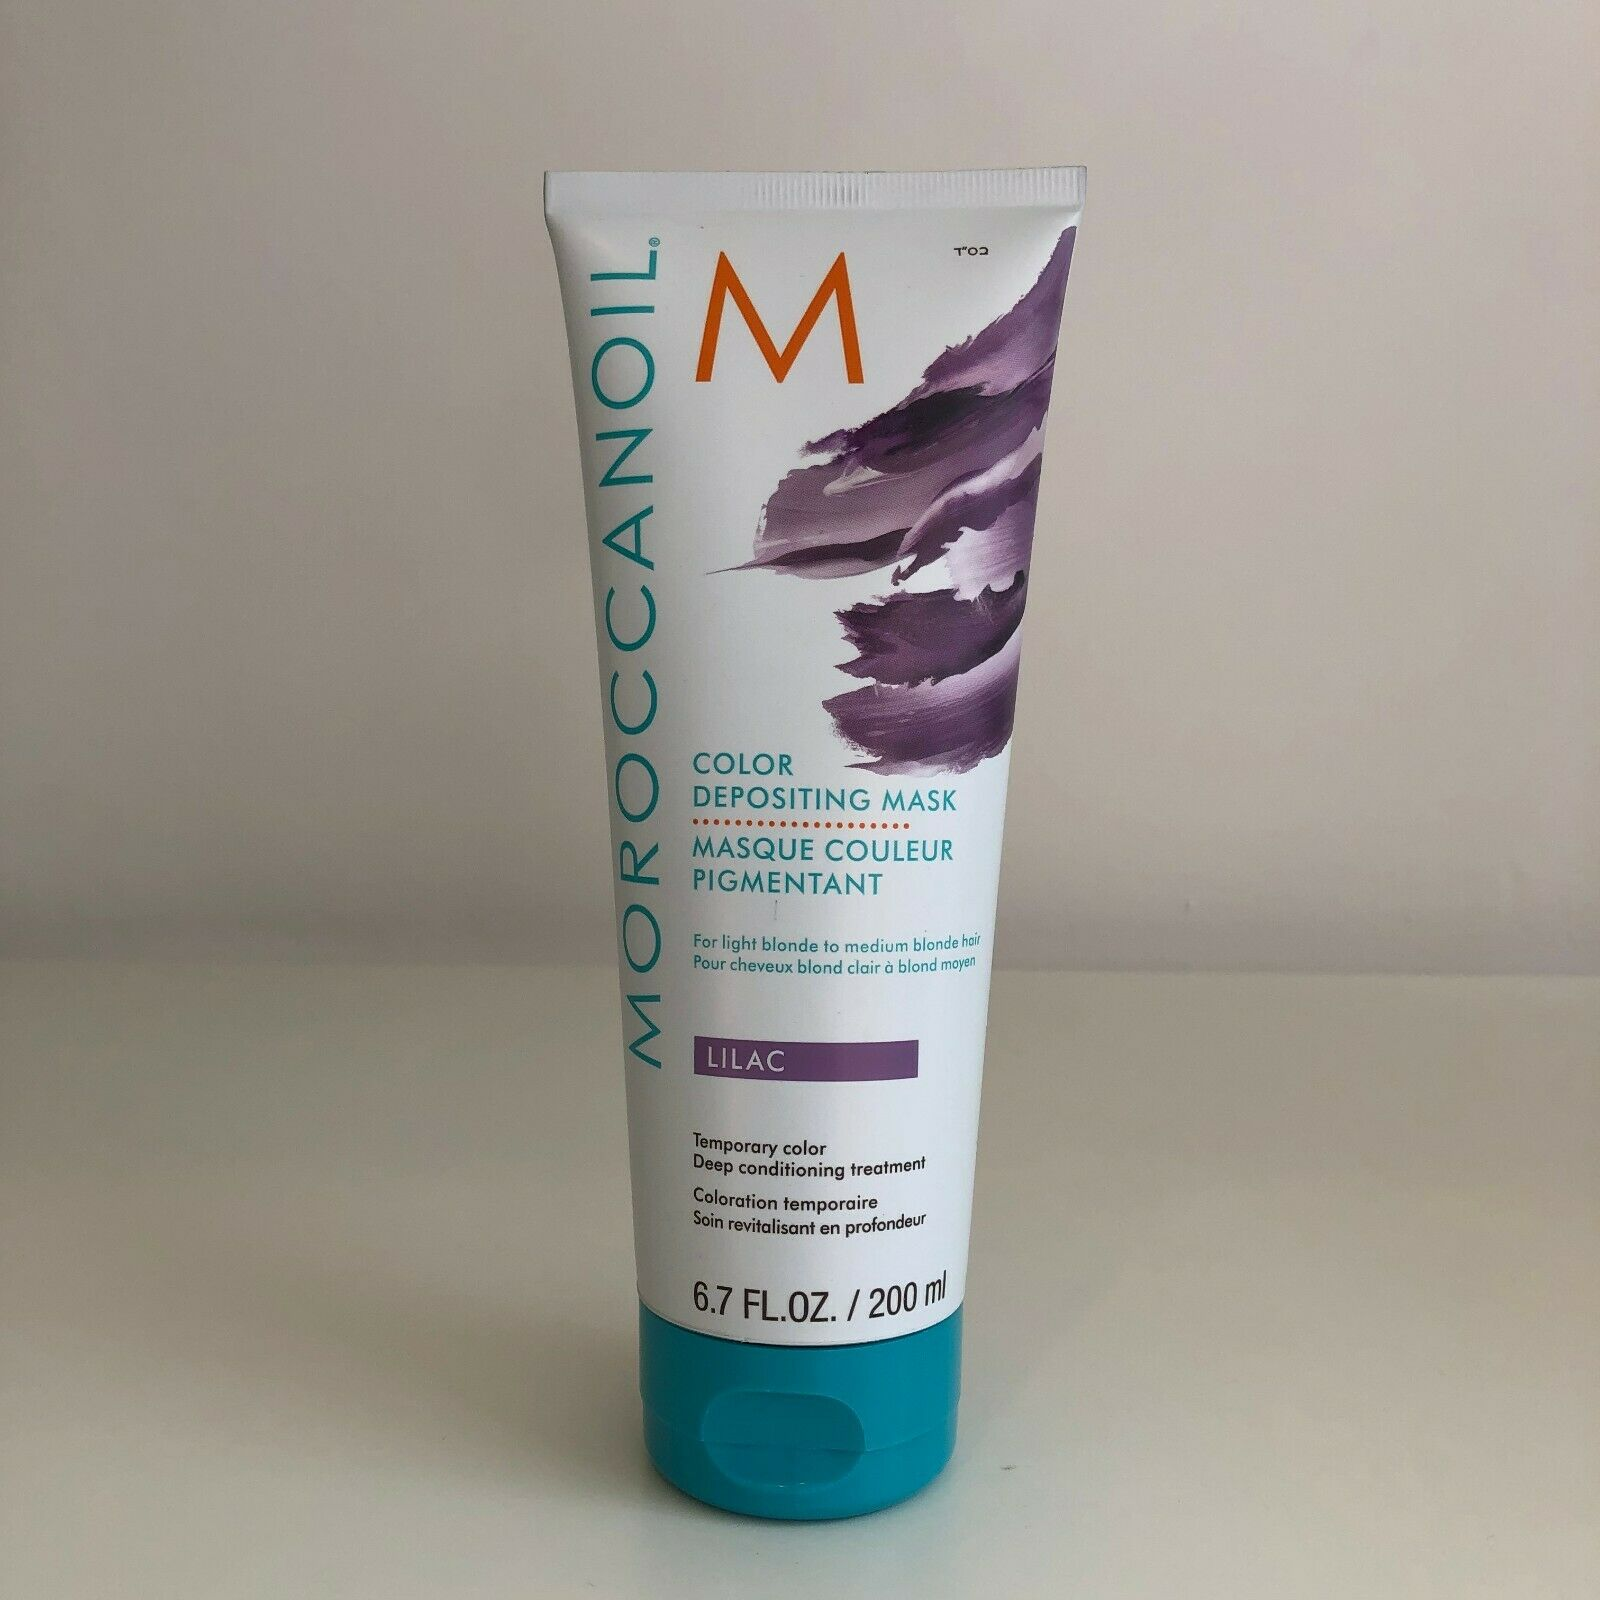 Moroccanoil Lilac Hair Color Depositing Mask